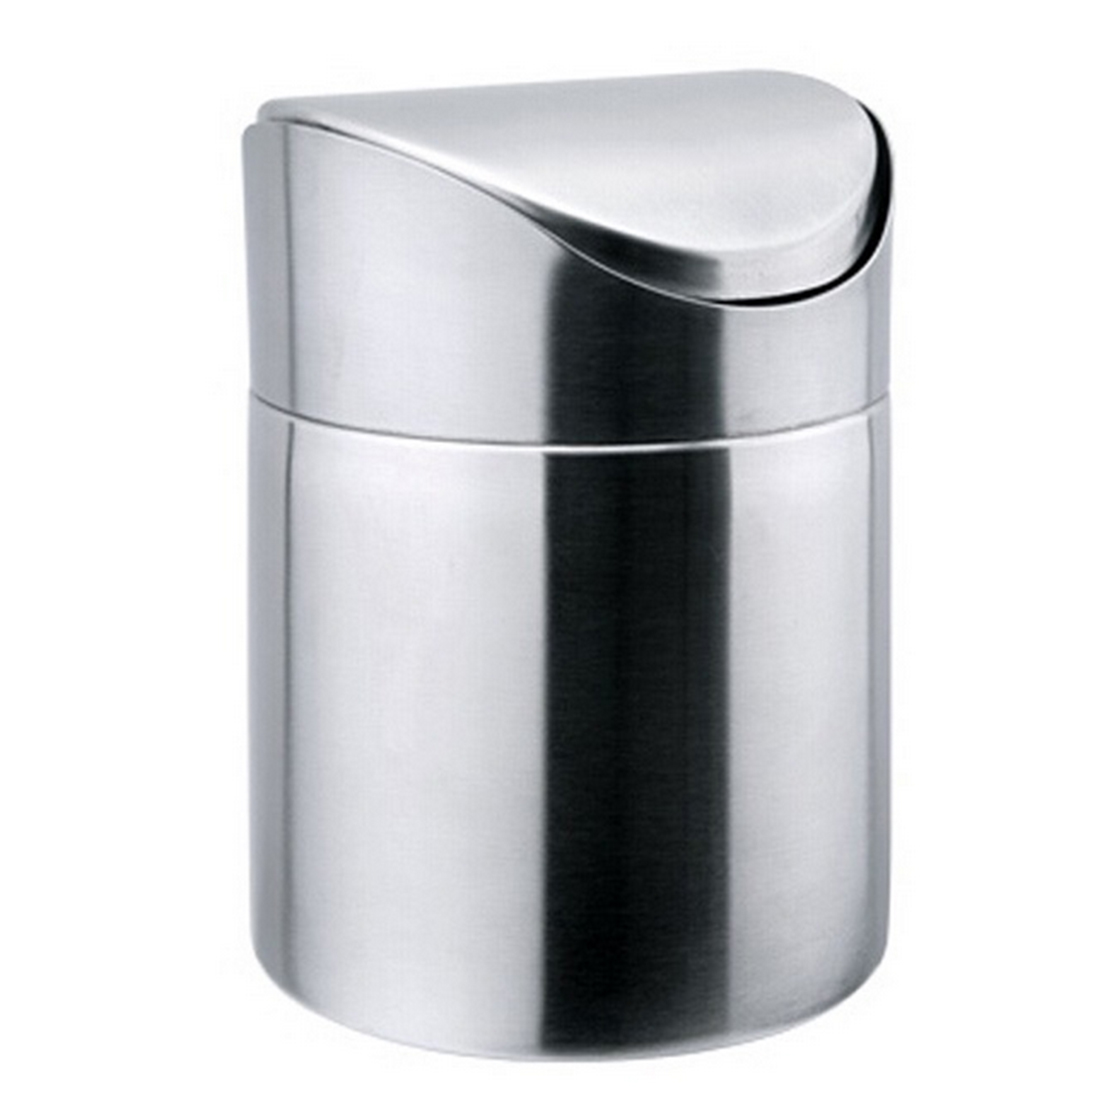 Stainless Steel Mini Desktop Trash Can with Swing Lid Storage ...